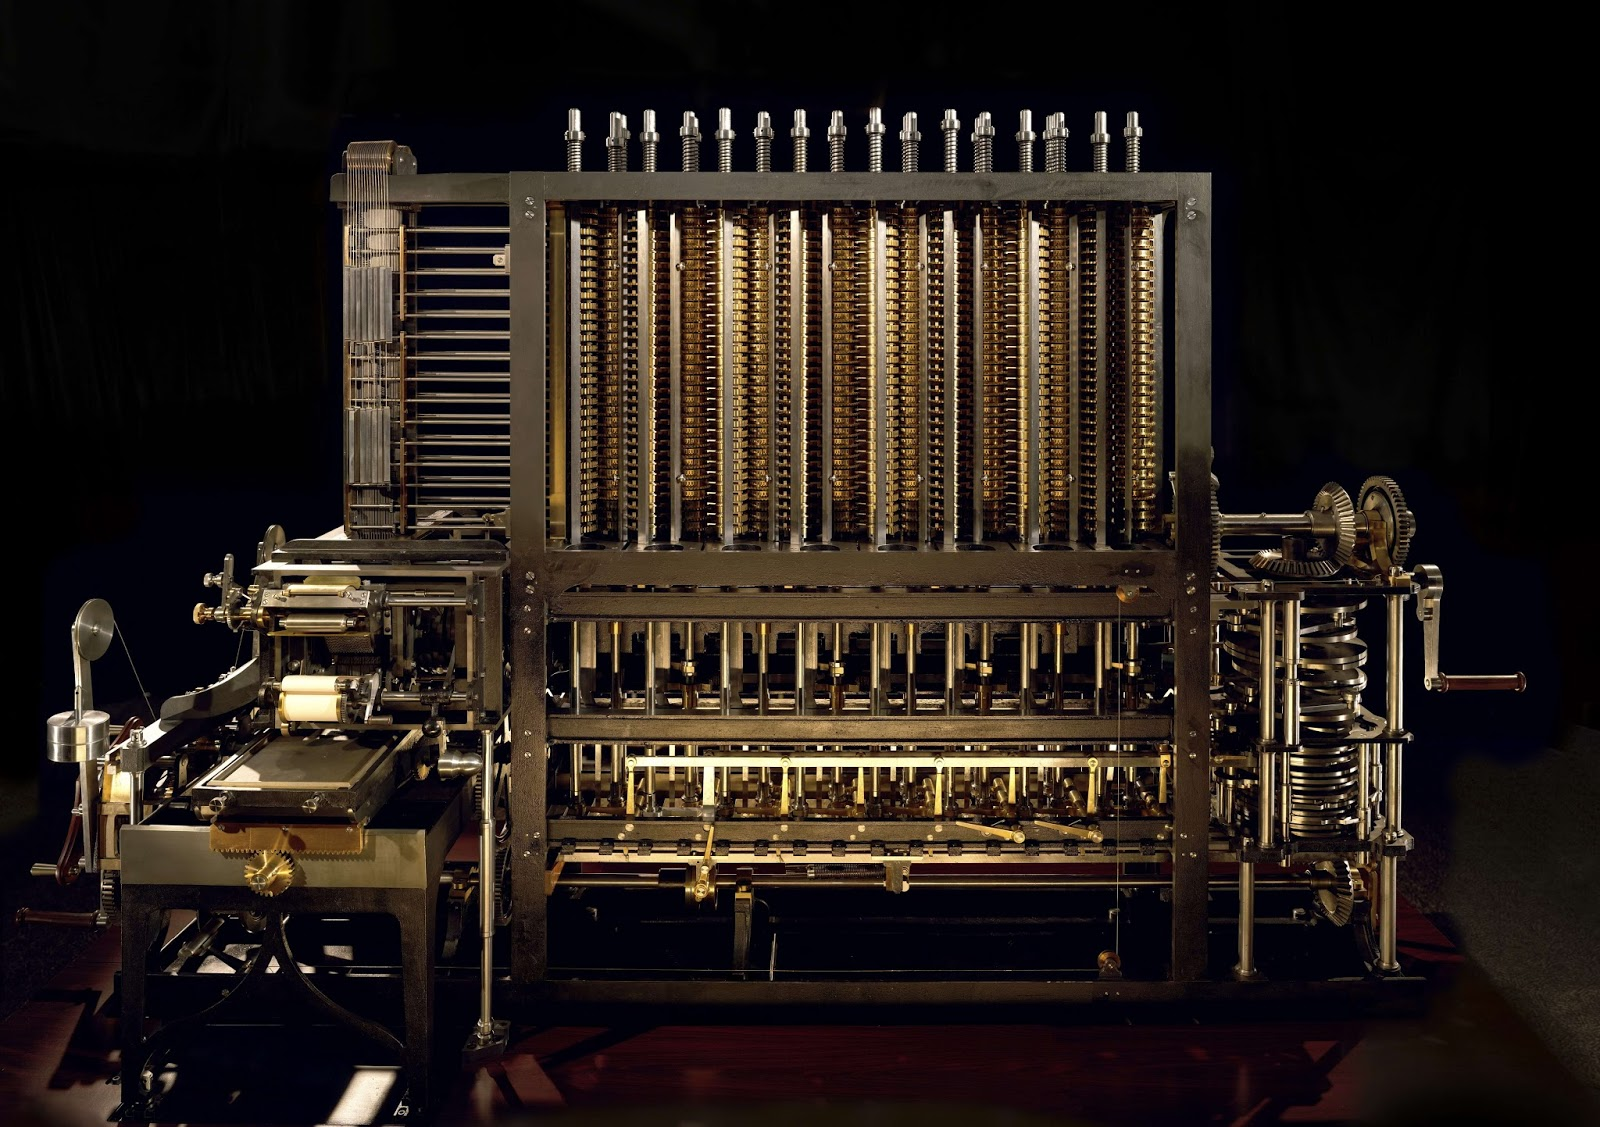 History of Computers and Computing, Babbage, Next ... |The Difference Engine